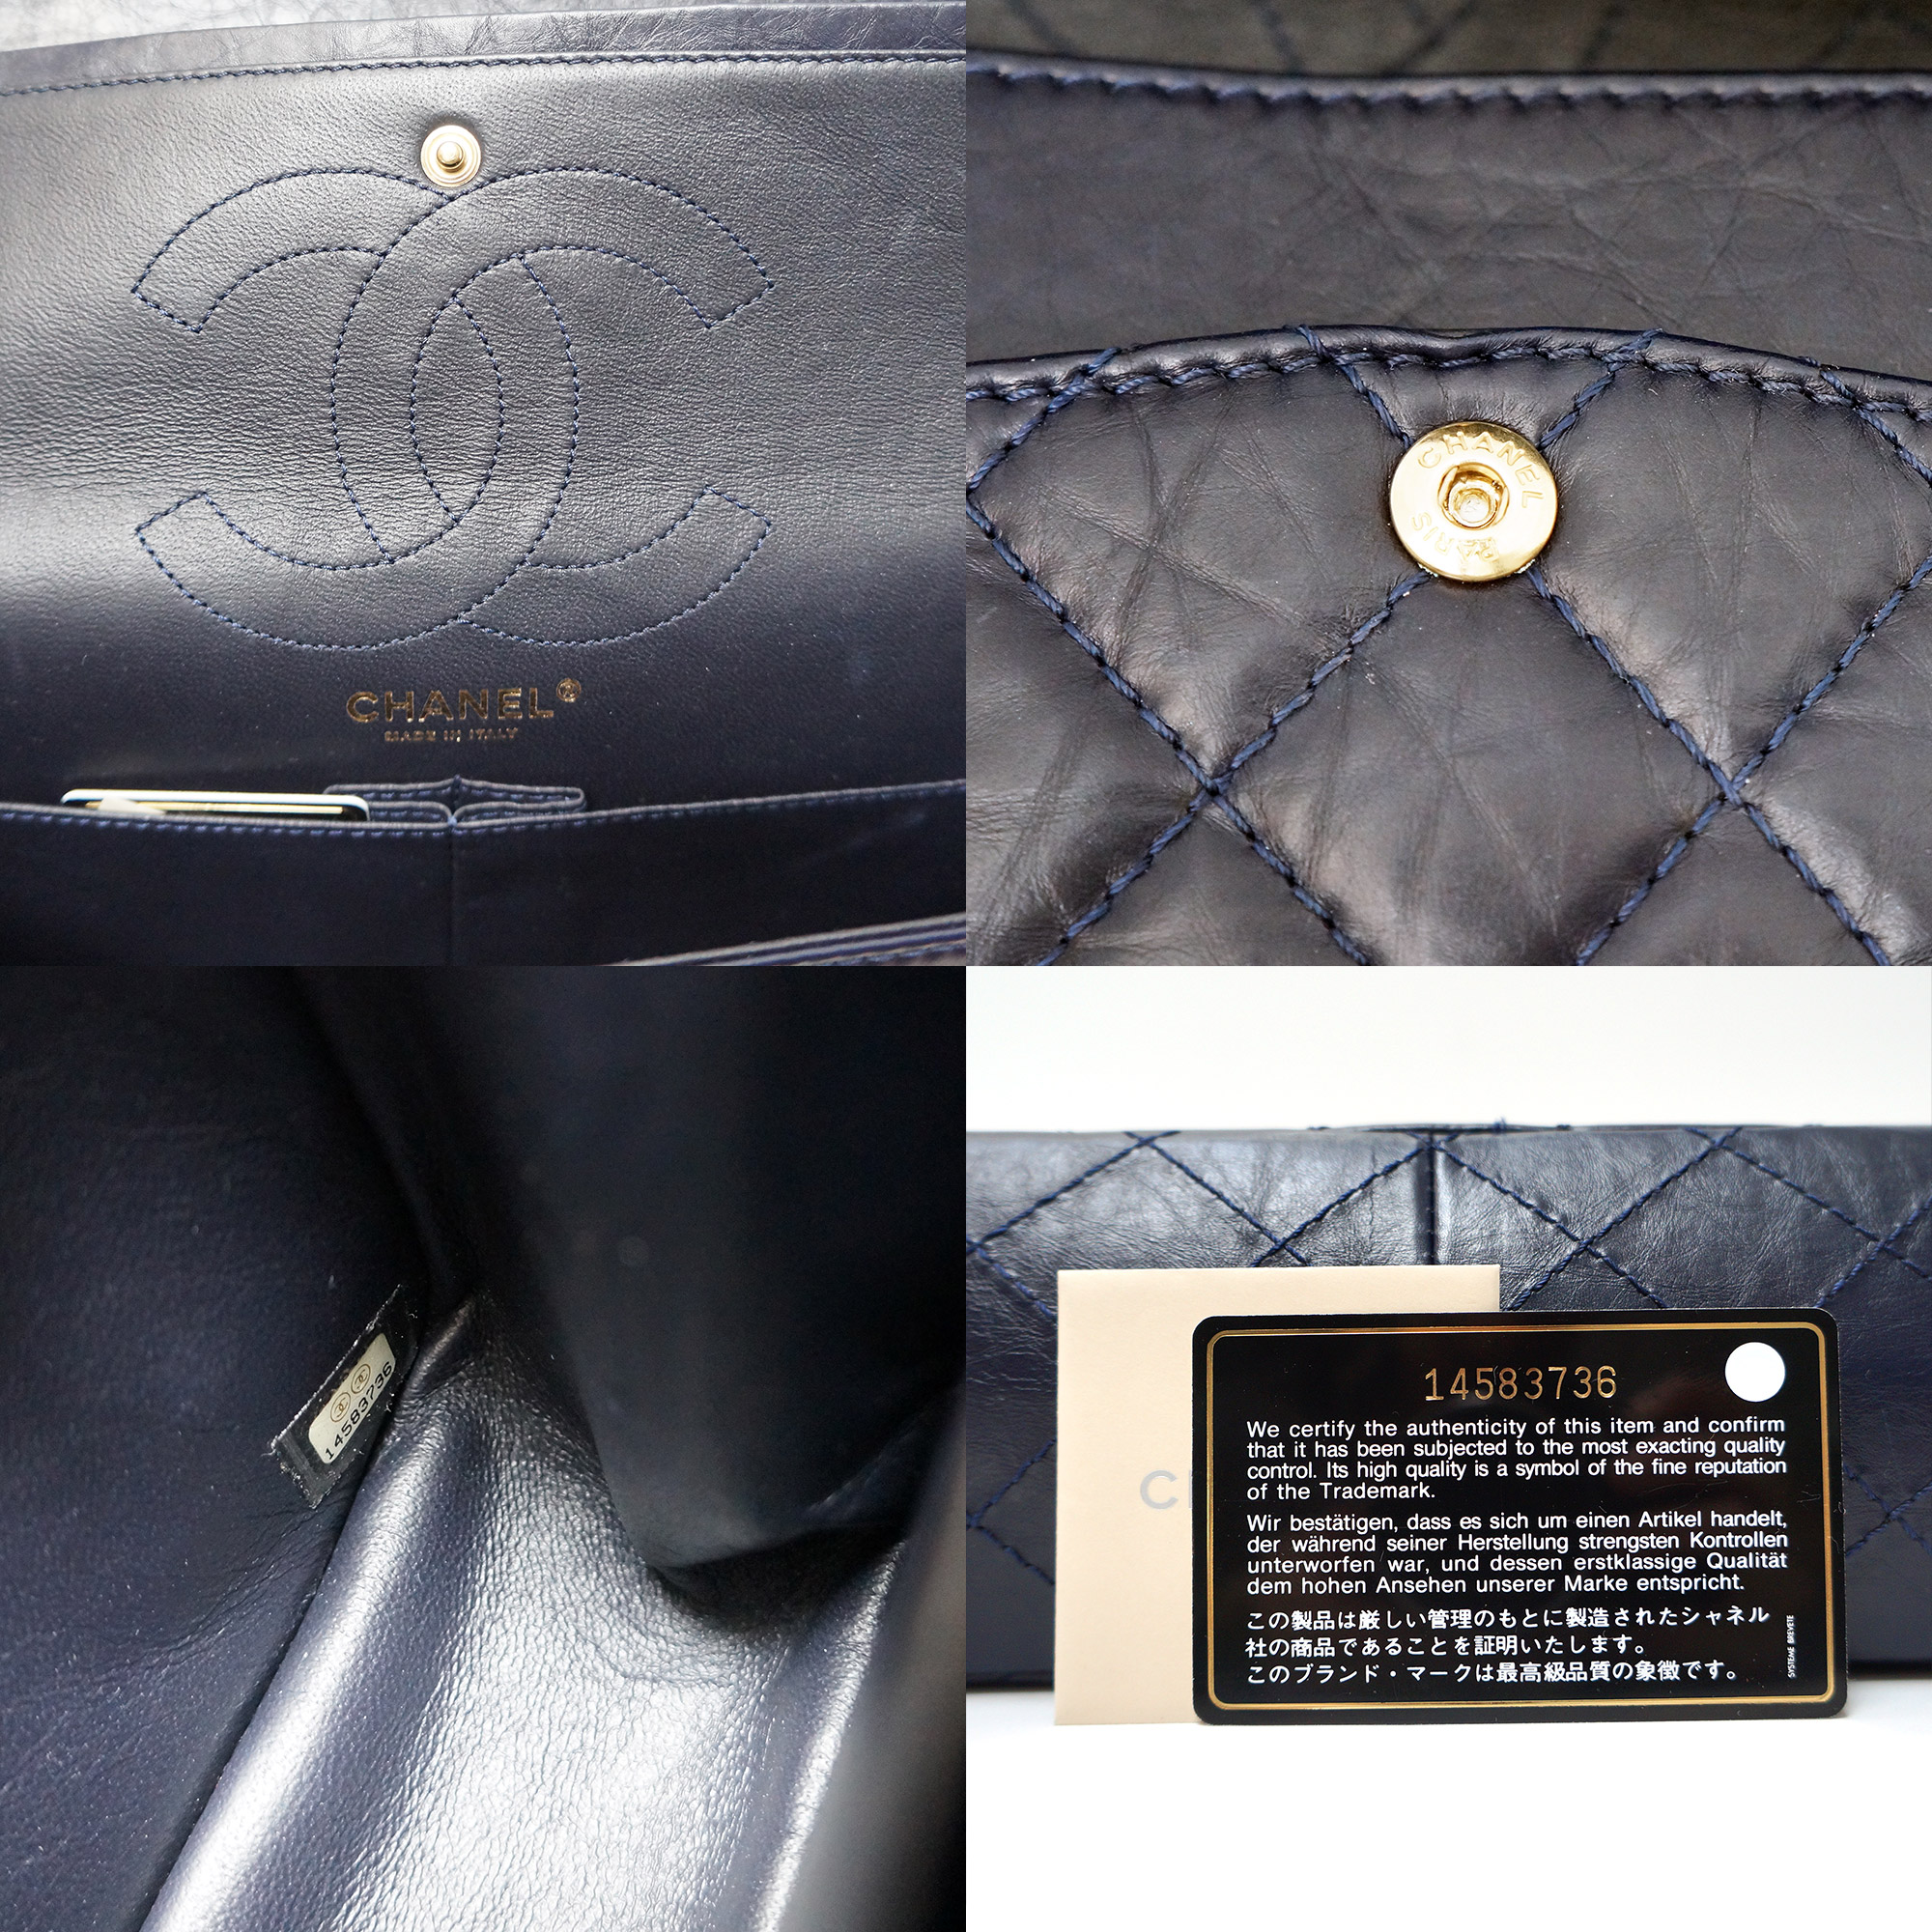 3c8874f50166 Chanel 2.55 Reissue Flap Bag 226 Navy Aged Leather Gold Hardware ...